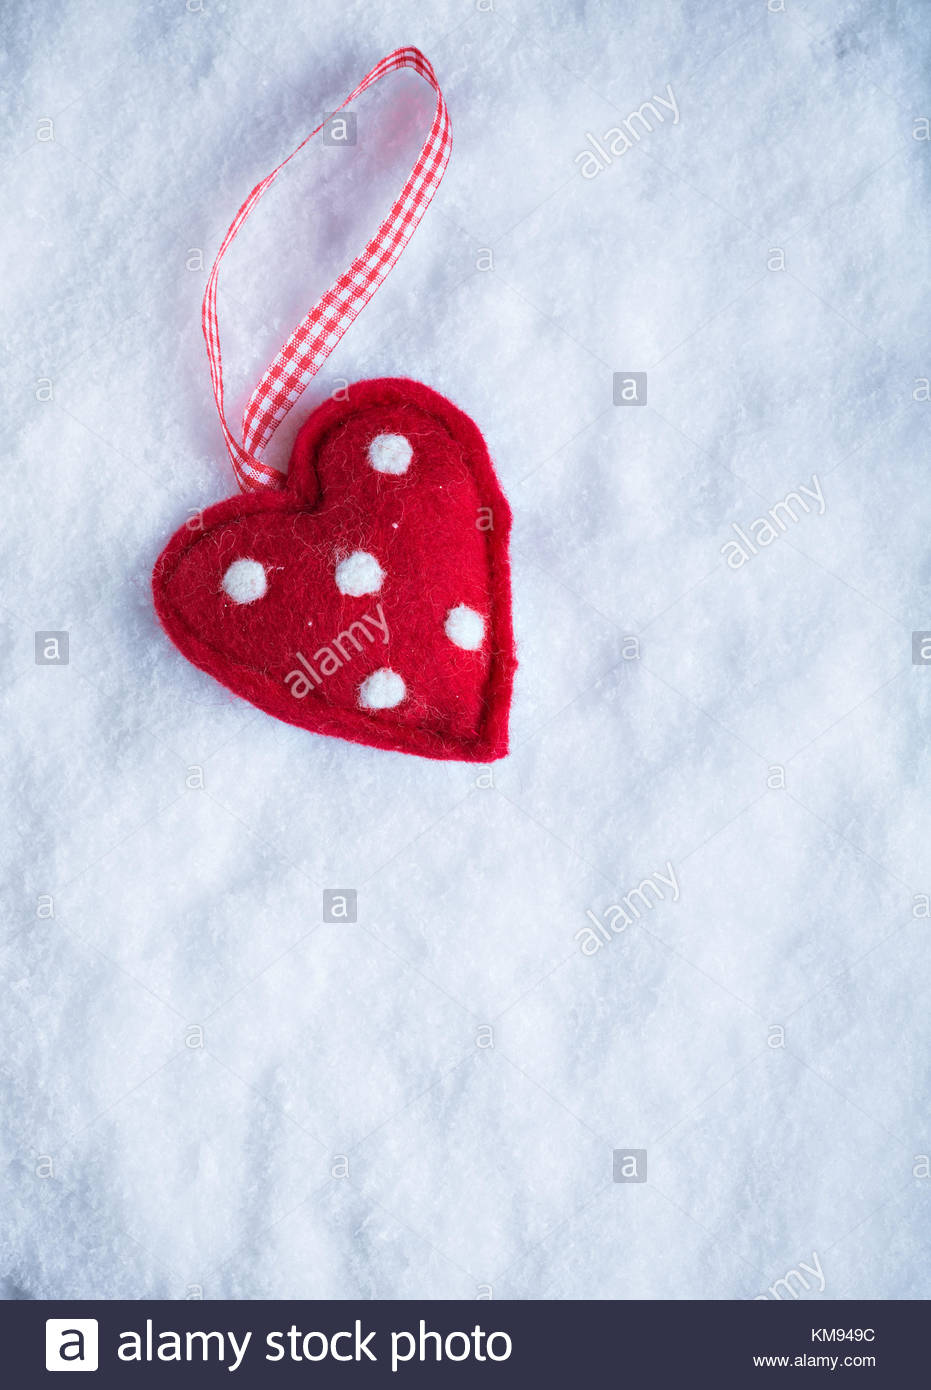 Red toy suave heart on a frosty white snow winter background Love 931x1390